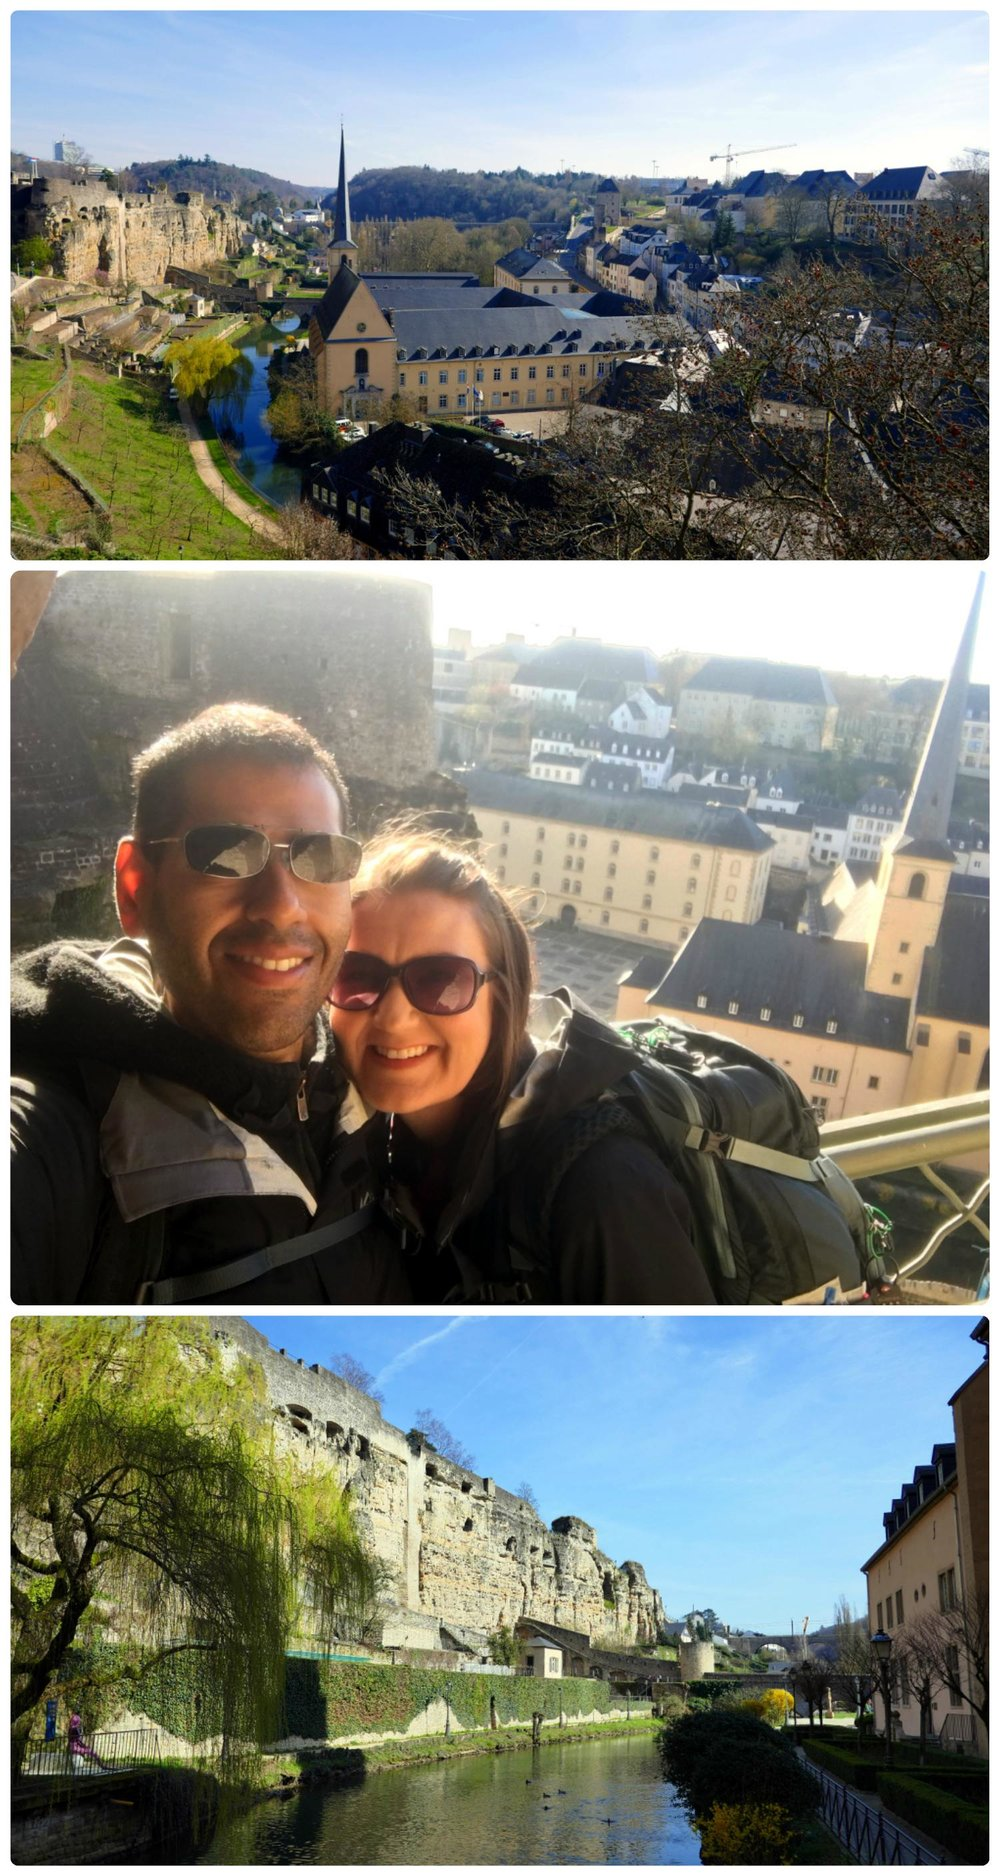 Top to bottom: View from 'Europe's most beautiful balcony', us walking the path along the city walls towards the Alzette River, view from the 'old city' - on the left of the Alzette River is the Melusina Mermaid sculpture and straight ahead is the Stierchen Bridge.